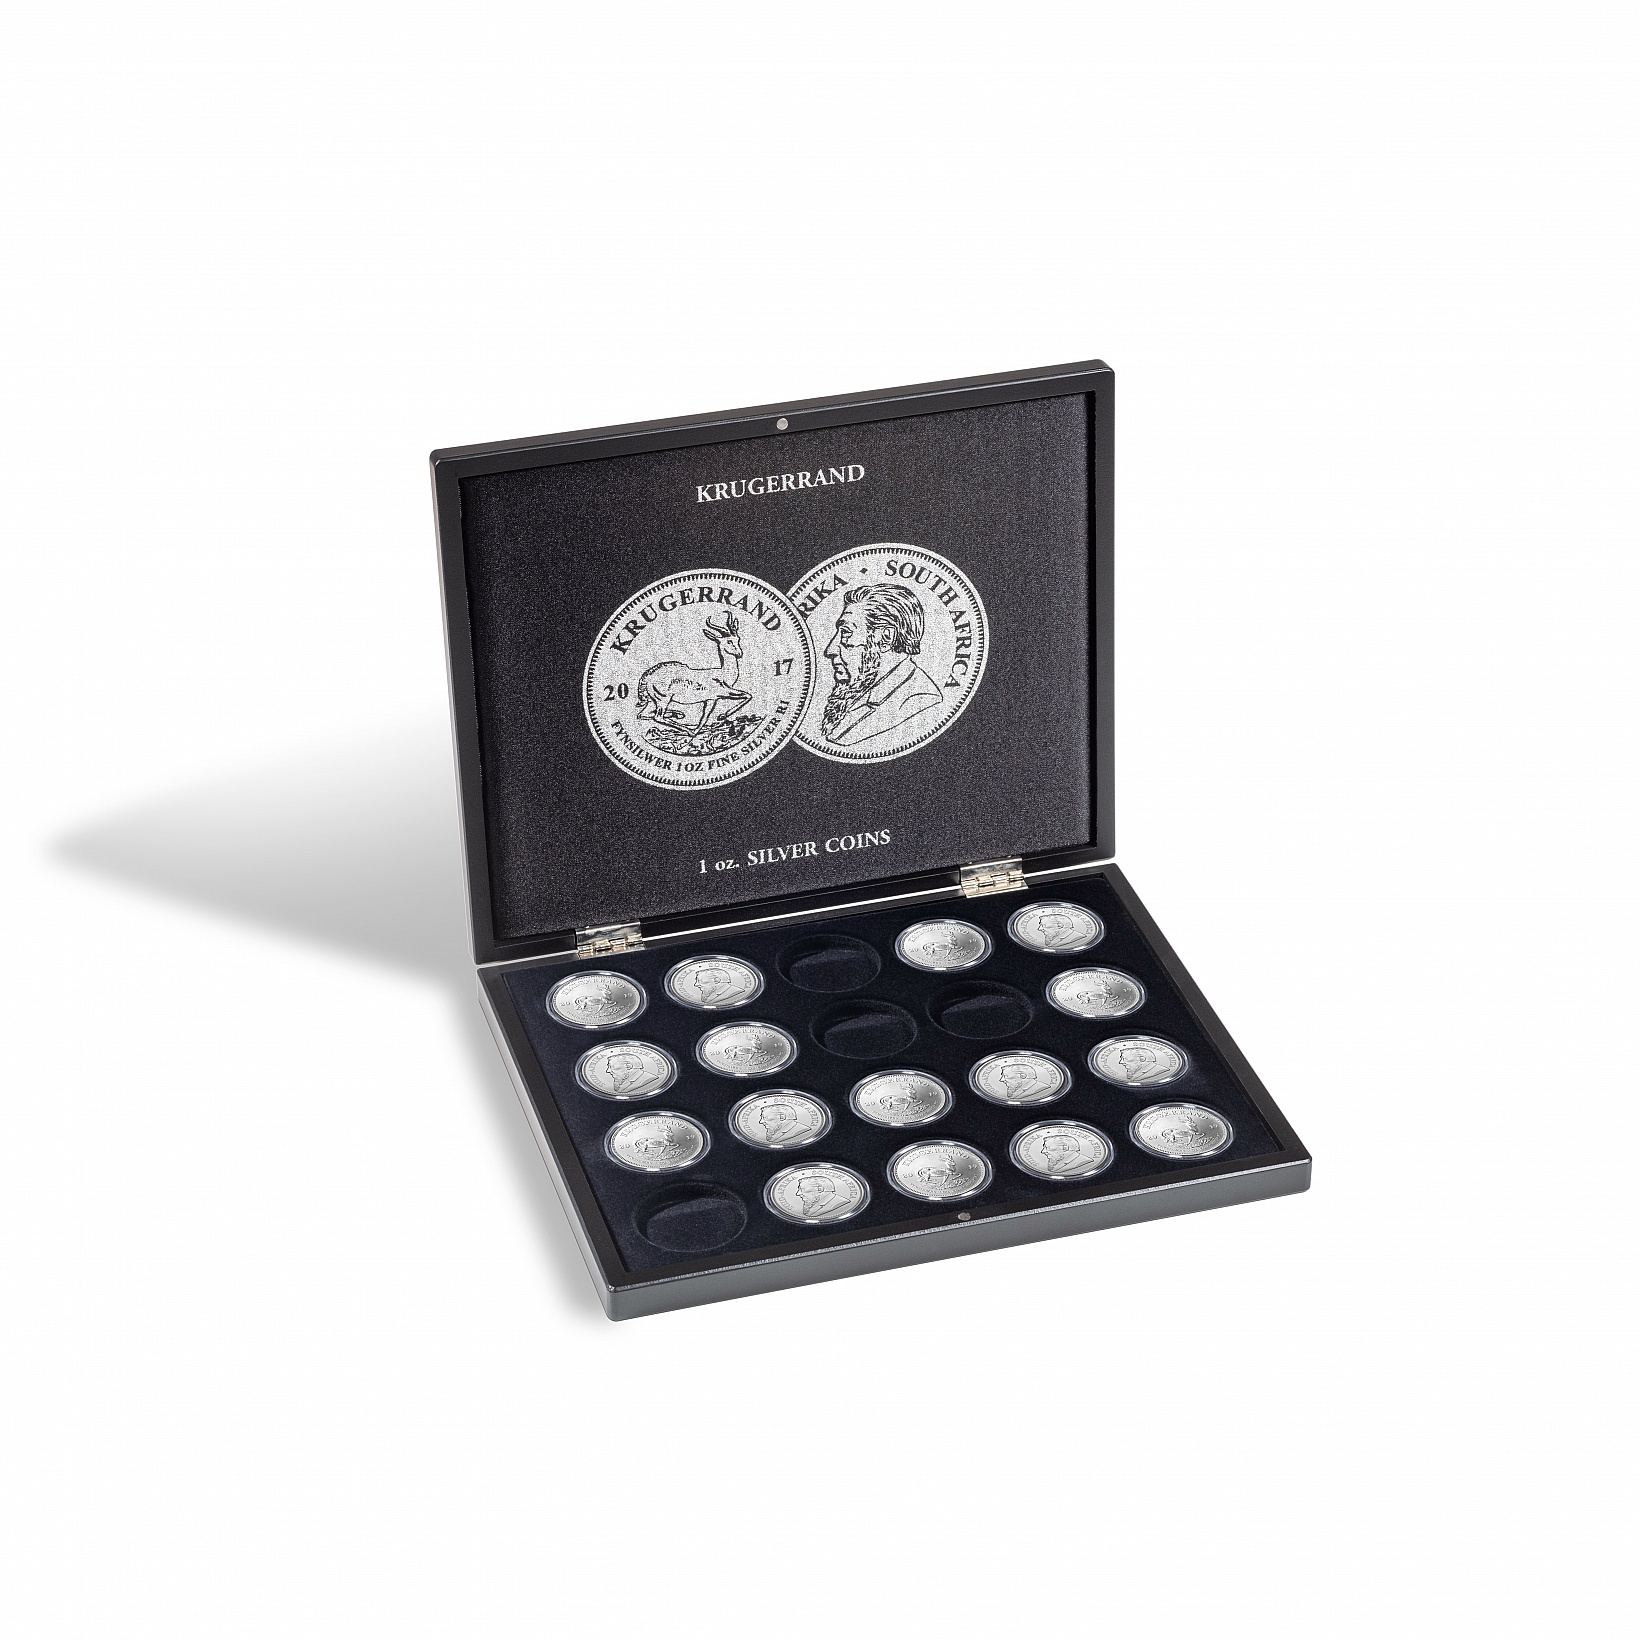 presentation-case-for-20-krugerrand-silver-coins-1-oz-in-capsules-1